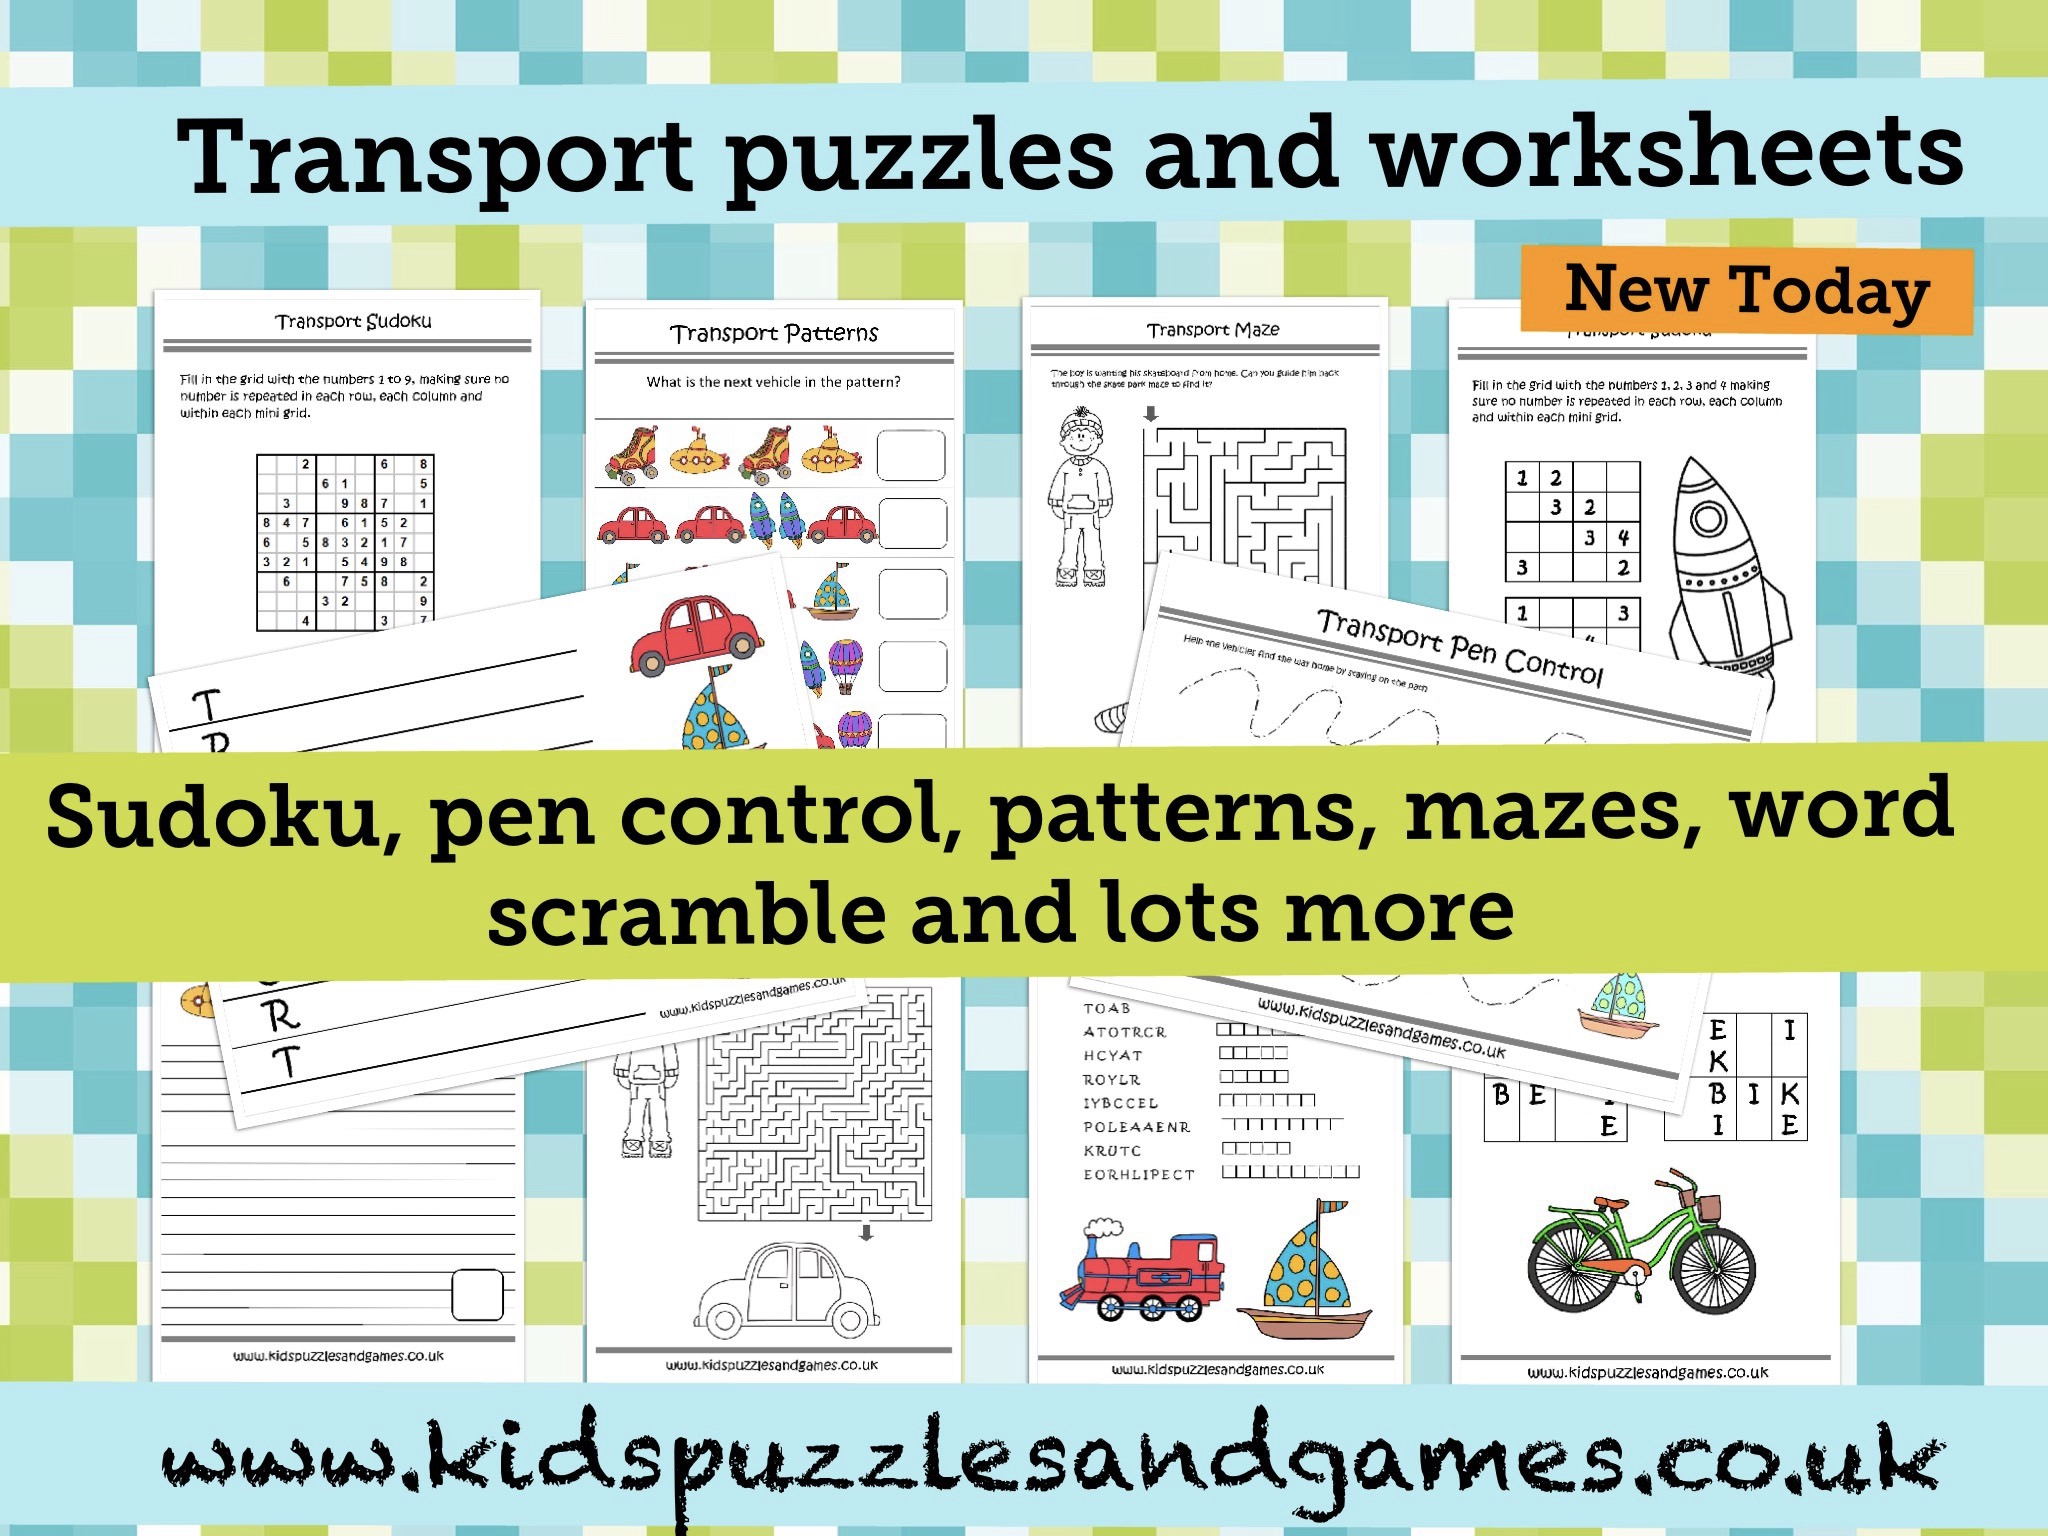 Welcome To Kids Puzzles And Games - Free Printable Puzzles For 8 Year Olds